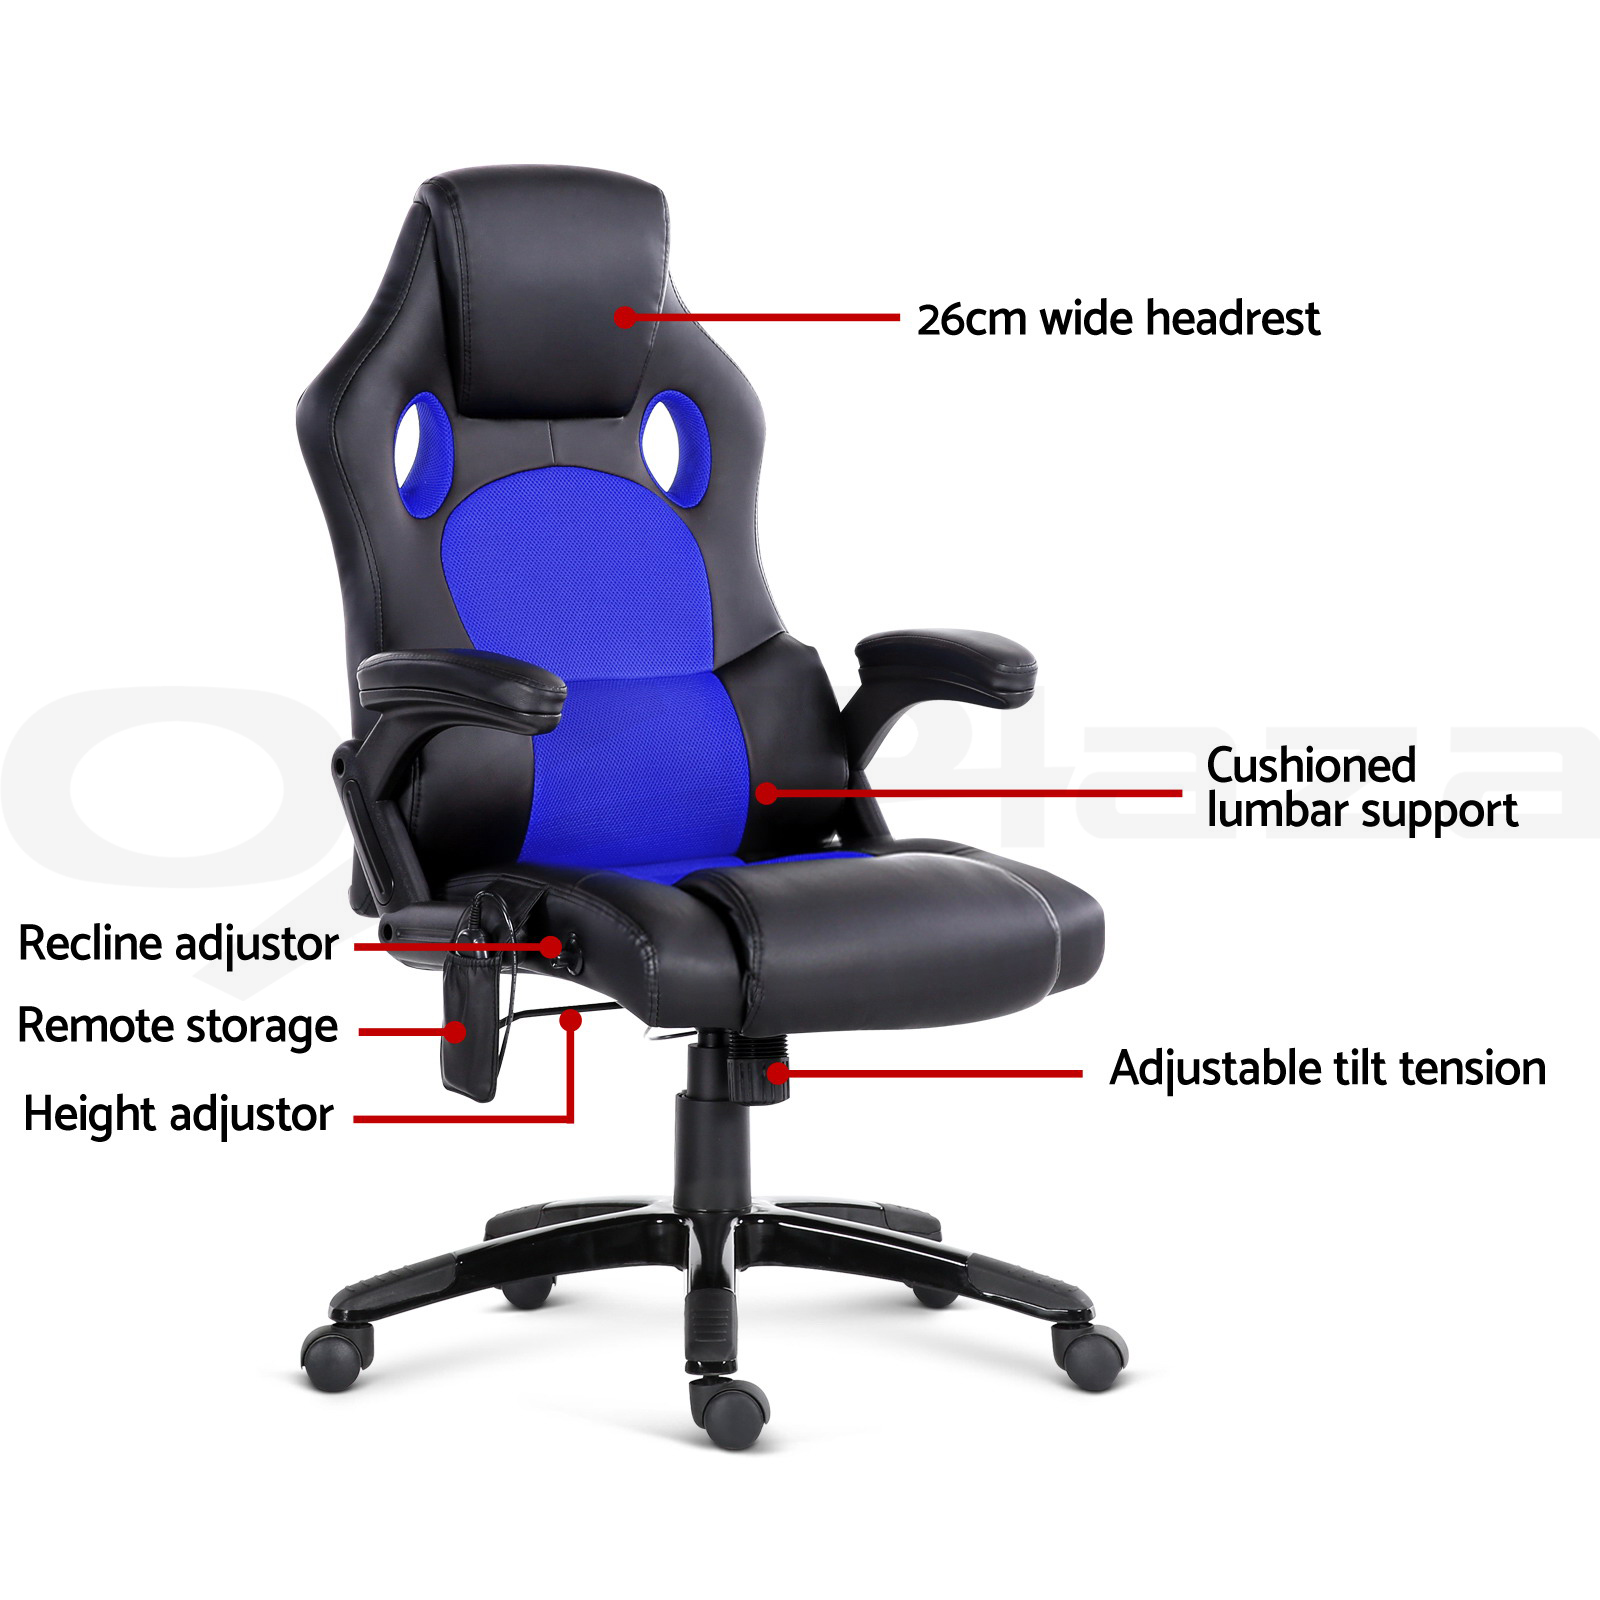 racing office chairs hanging chair near me 8 point massage executive heat